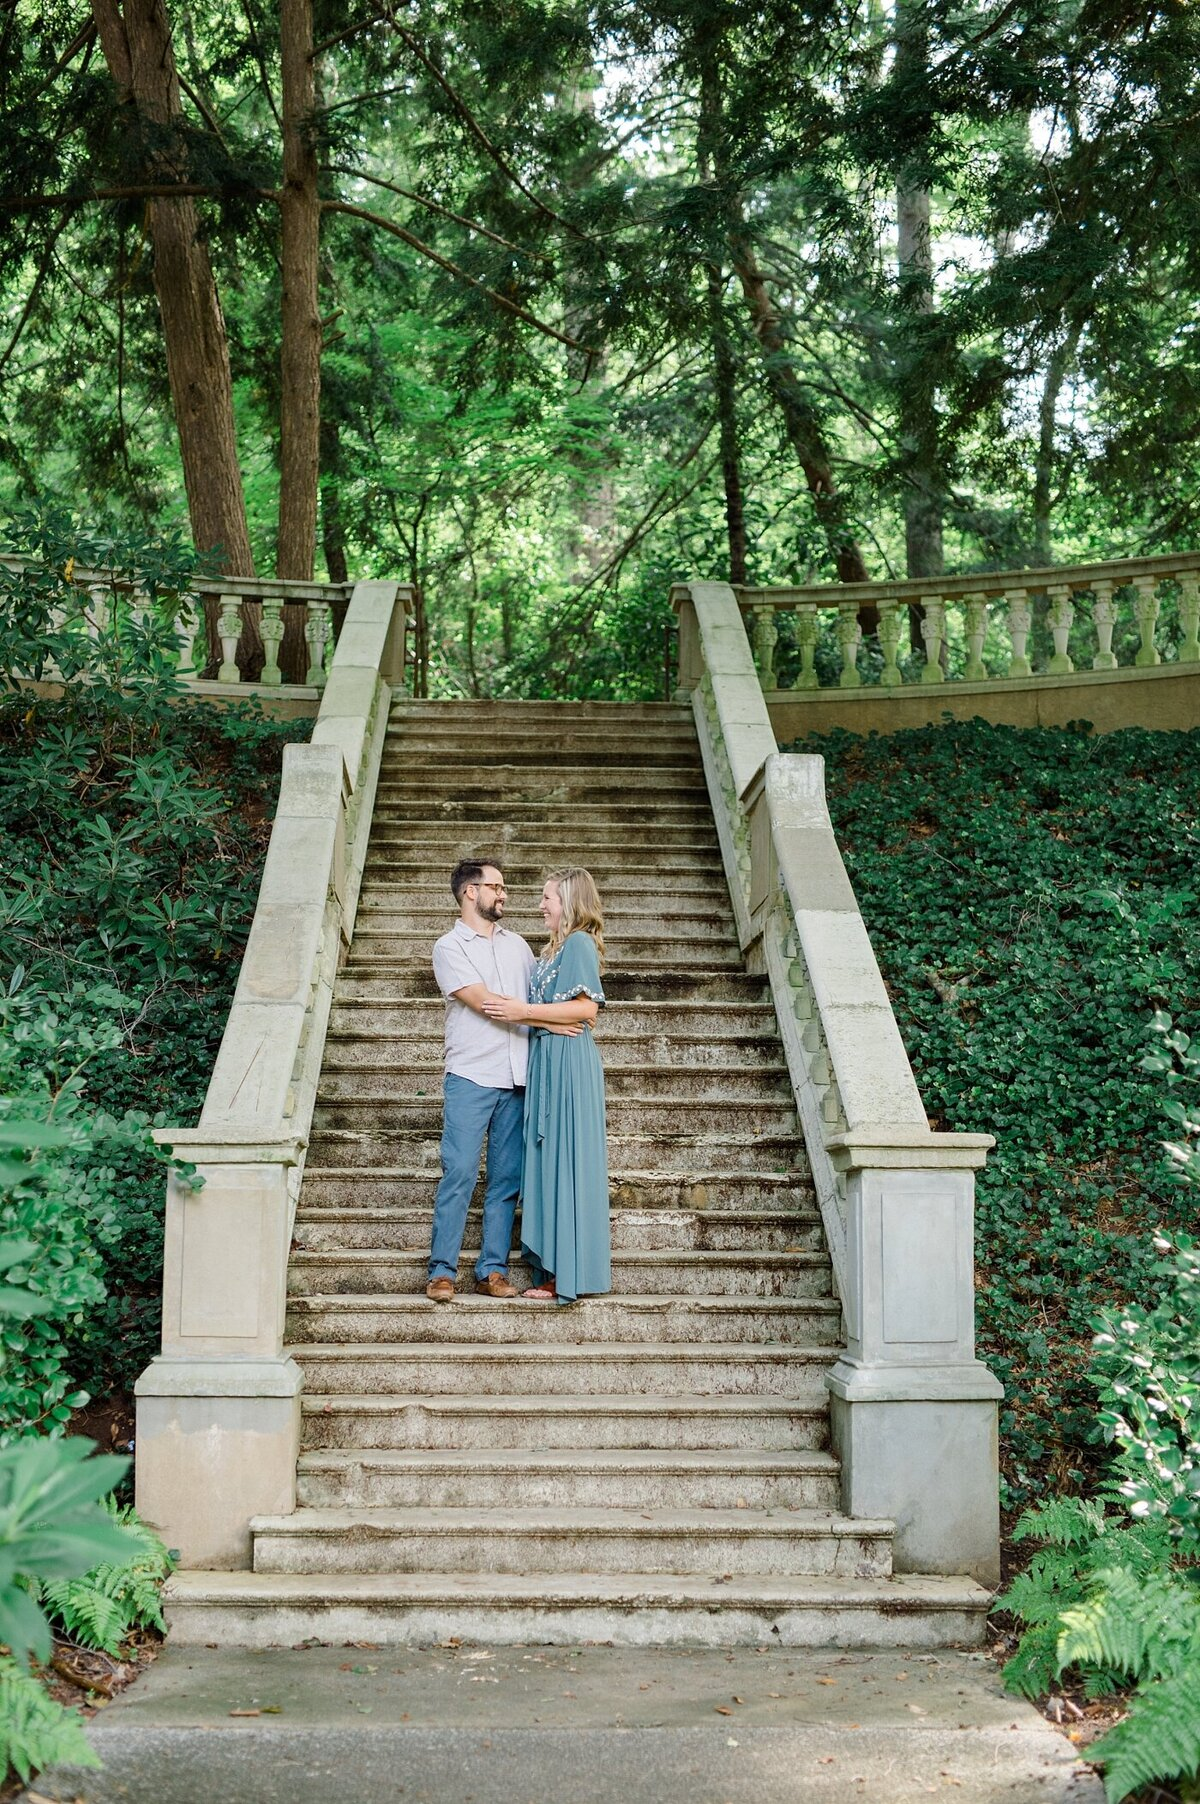 cator-woolford-gardens-engagement-wedding-photographer-laura-barnes-photo-shackelford-06